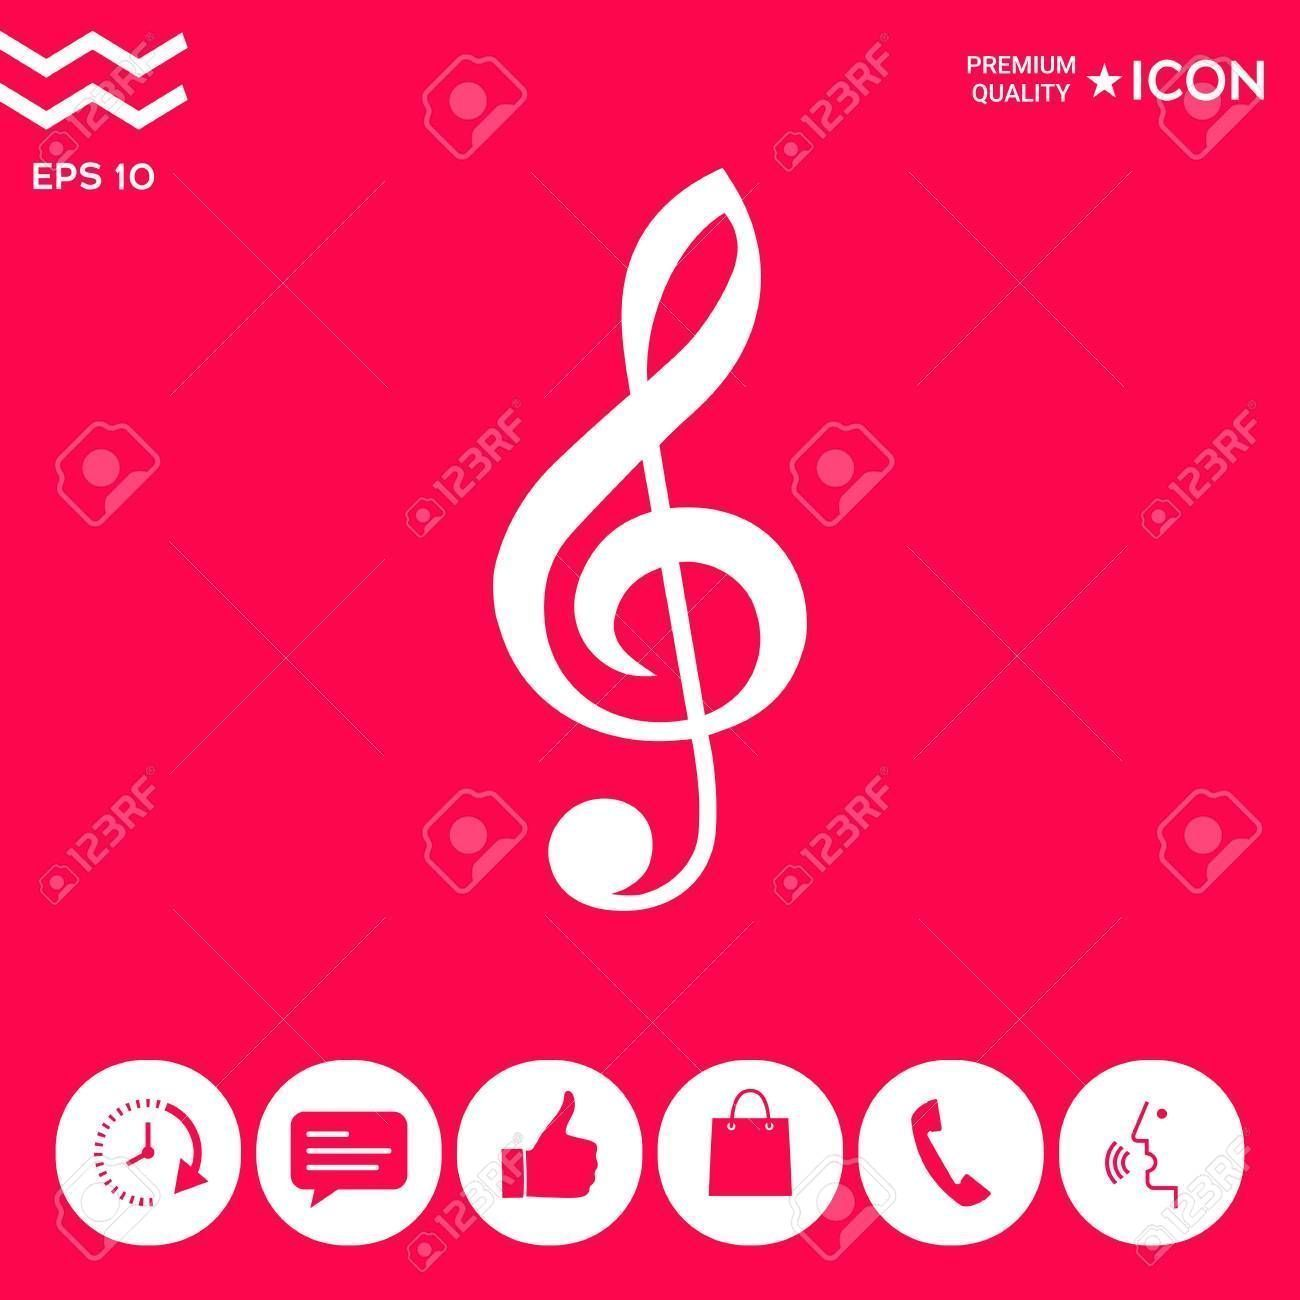 Treble clef icon , #Ad, #Treble, #clef, #icon #trebleclef Treble clef icon , #Ad, #Treble, #clef, #icon #trebleclef Treble clef icon , #Ad, #Treble, #clef, #icon #trebleclef Treble clef icon , #Ad, #Treble, #clef, #icon #trebleclef Treble clef icon , #Ad, #Treble, #clef, #icon #trebleclef Treble clef icon , #Ad, #Treble, #clef, #icon #trebleclef Treble clef icon , #Ad, #Treble, #clef, #icon #trebleclef Treble clef icon , #Ad, #Treble, #clef, #icon #trebleclef Treble clef icon , #Ad, #Treble, #cl #trebleclef